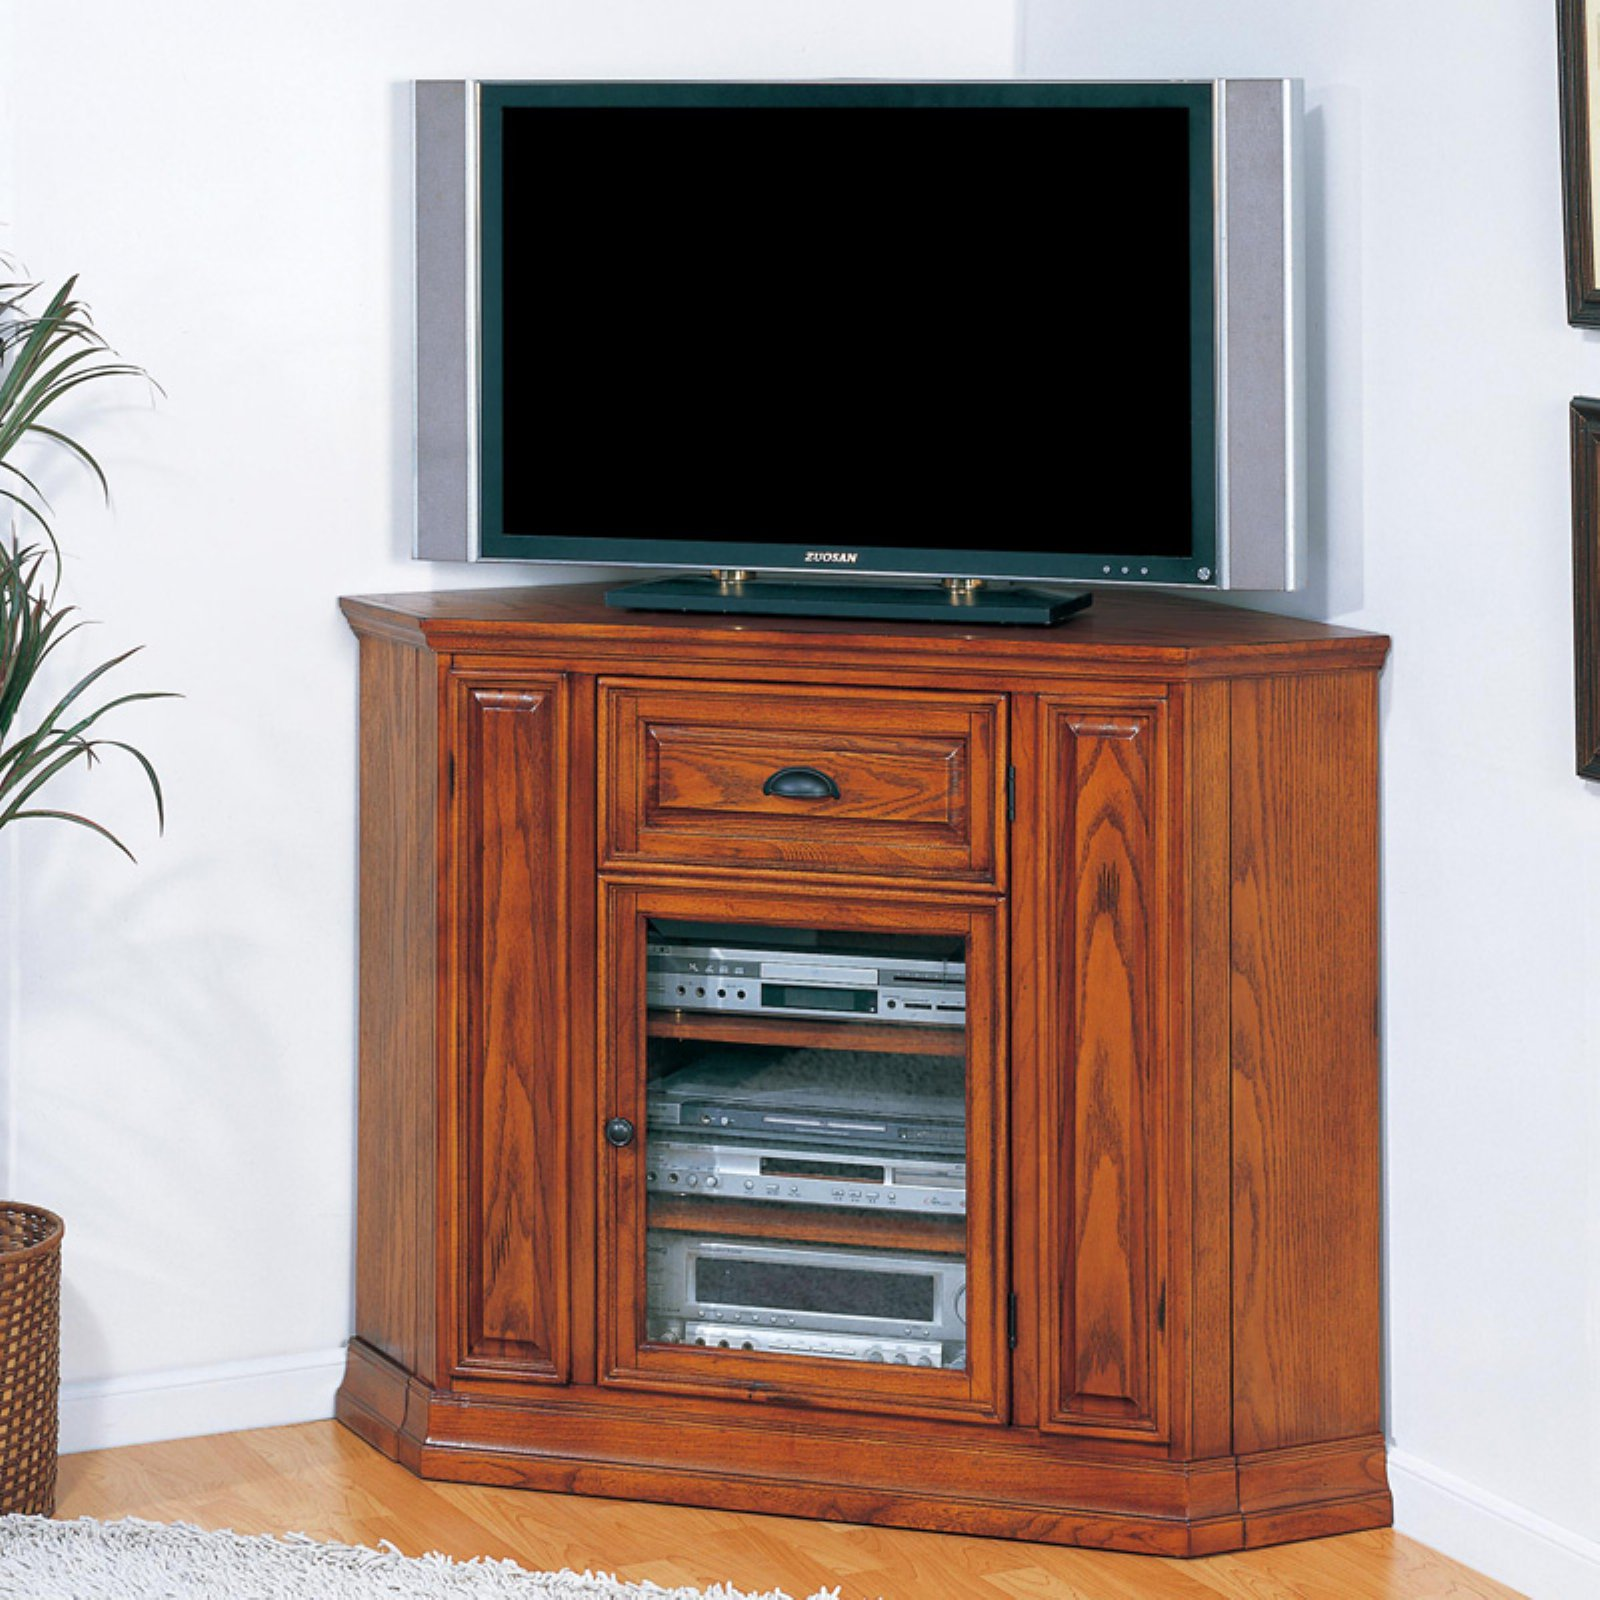 "Leick Home Boulder Creek 36"" Tall Corner TV Stand for TV's up to 46"", Medium Oak"